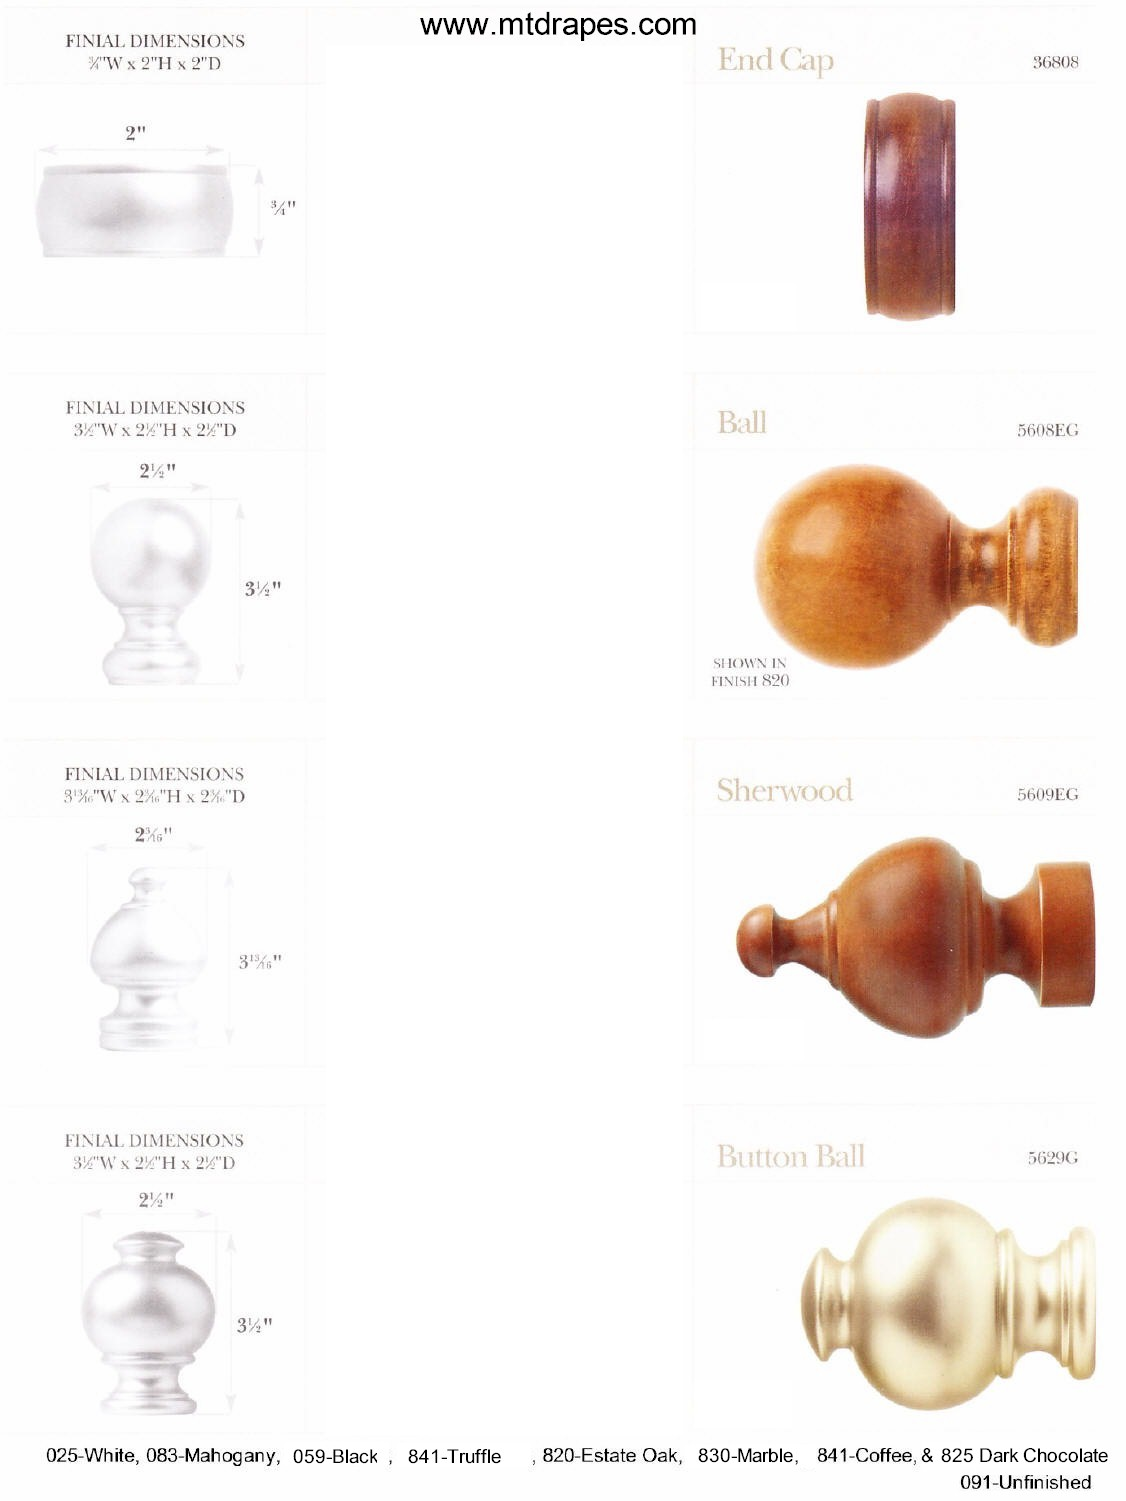 Wood Poles And Finishes Finials